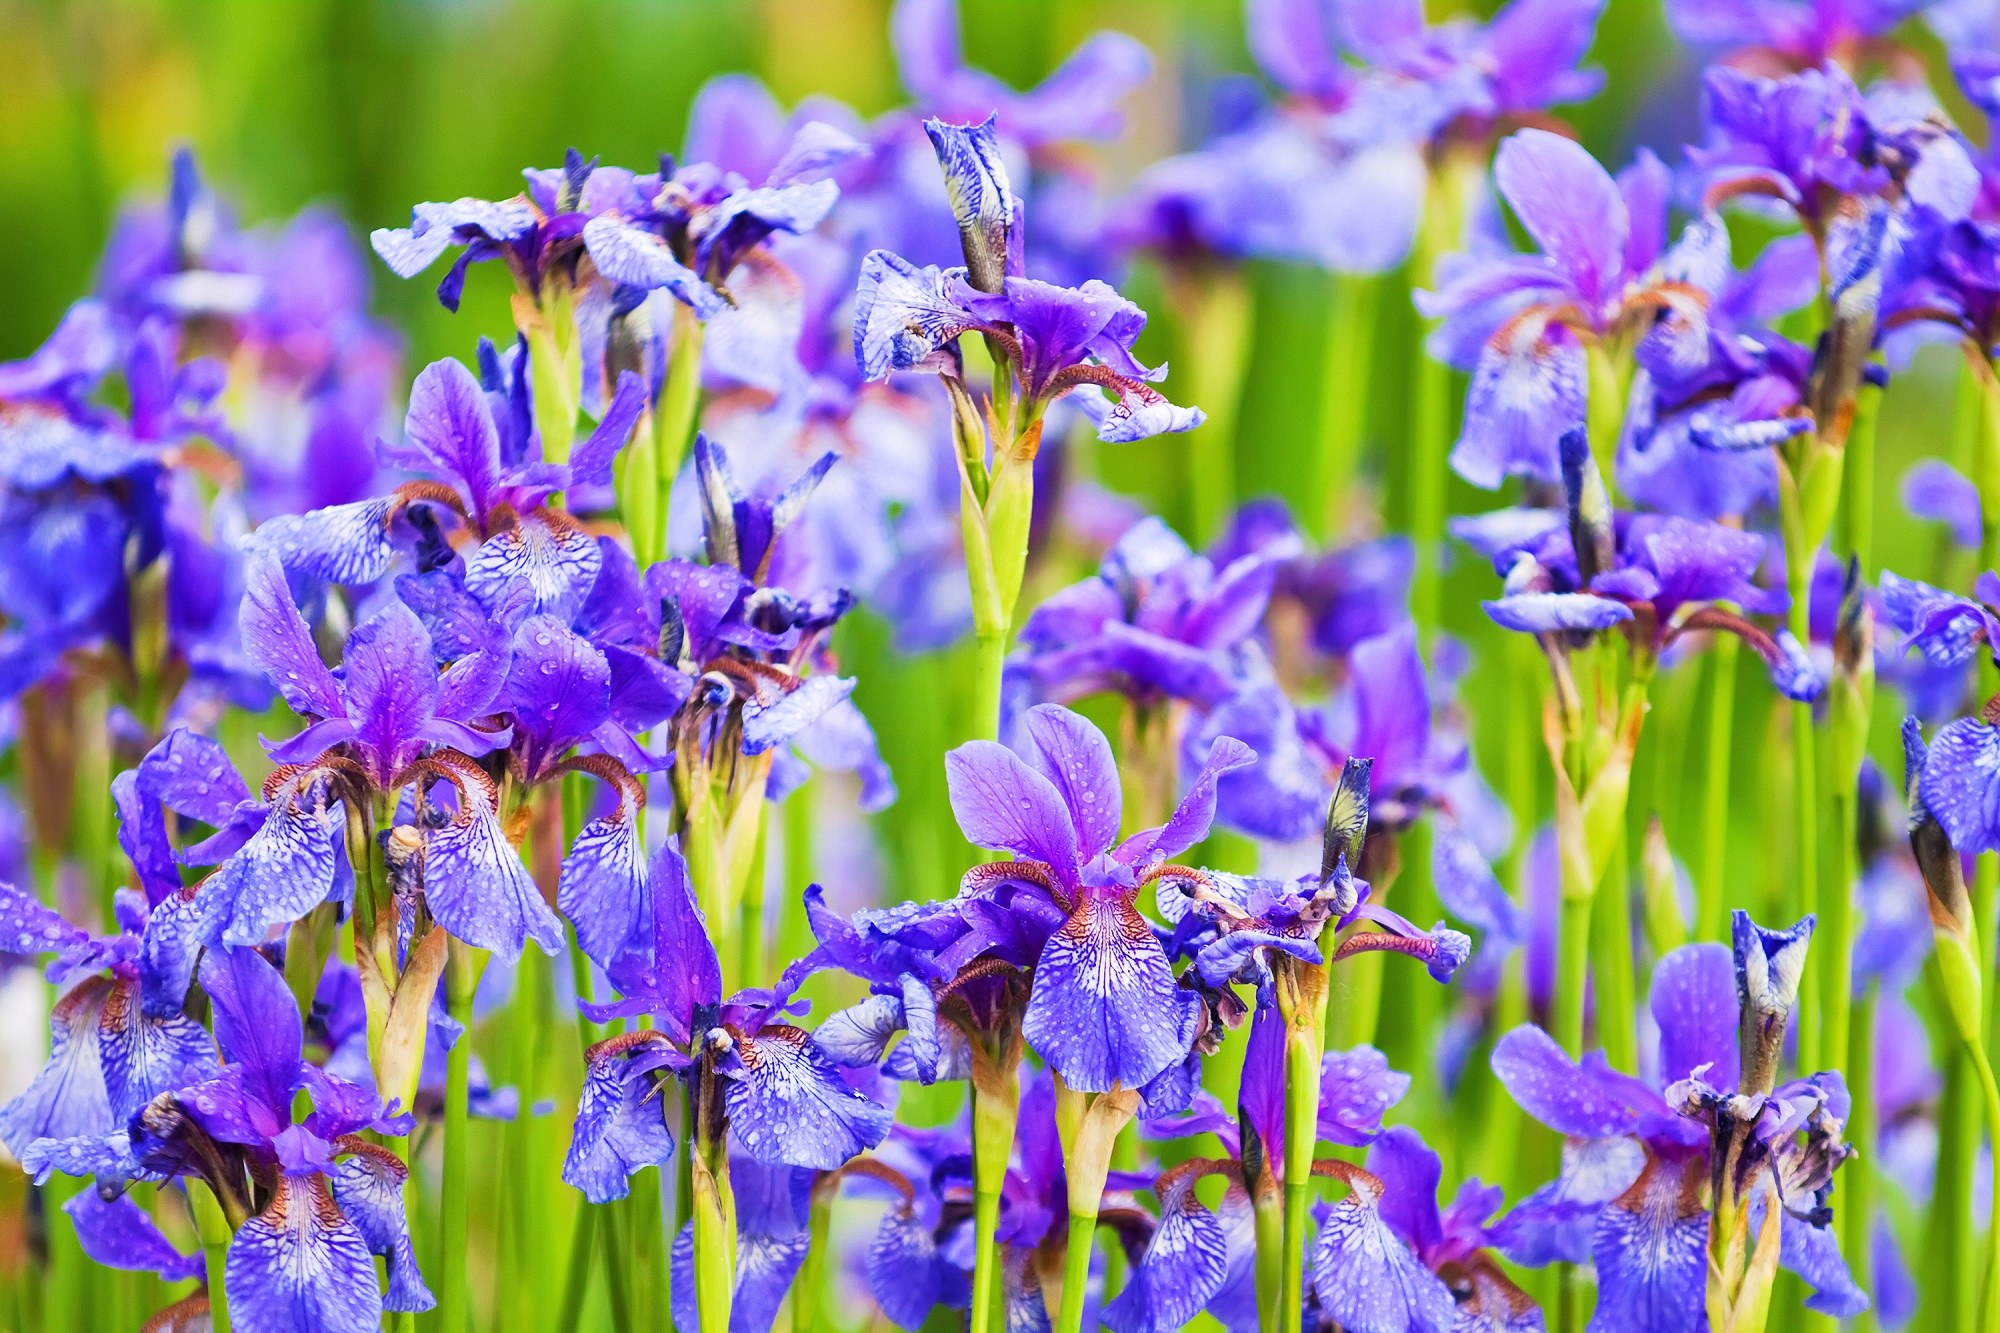 Pop in iris bulbs for spring colour (Squire's Garden Centres/PA)